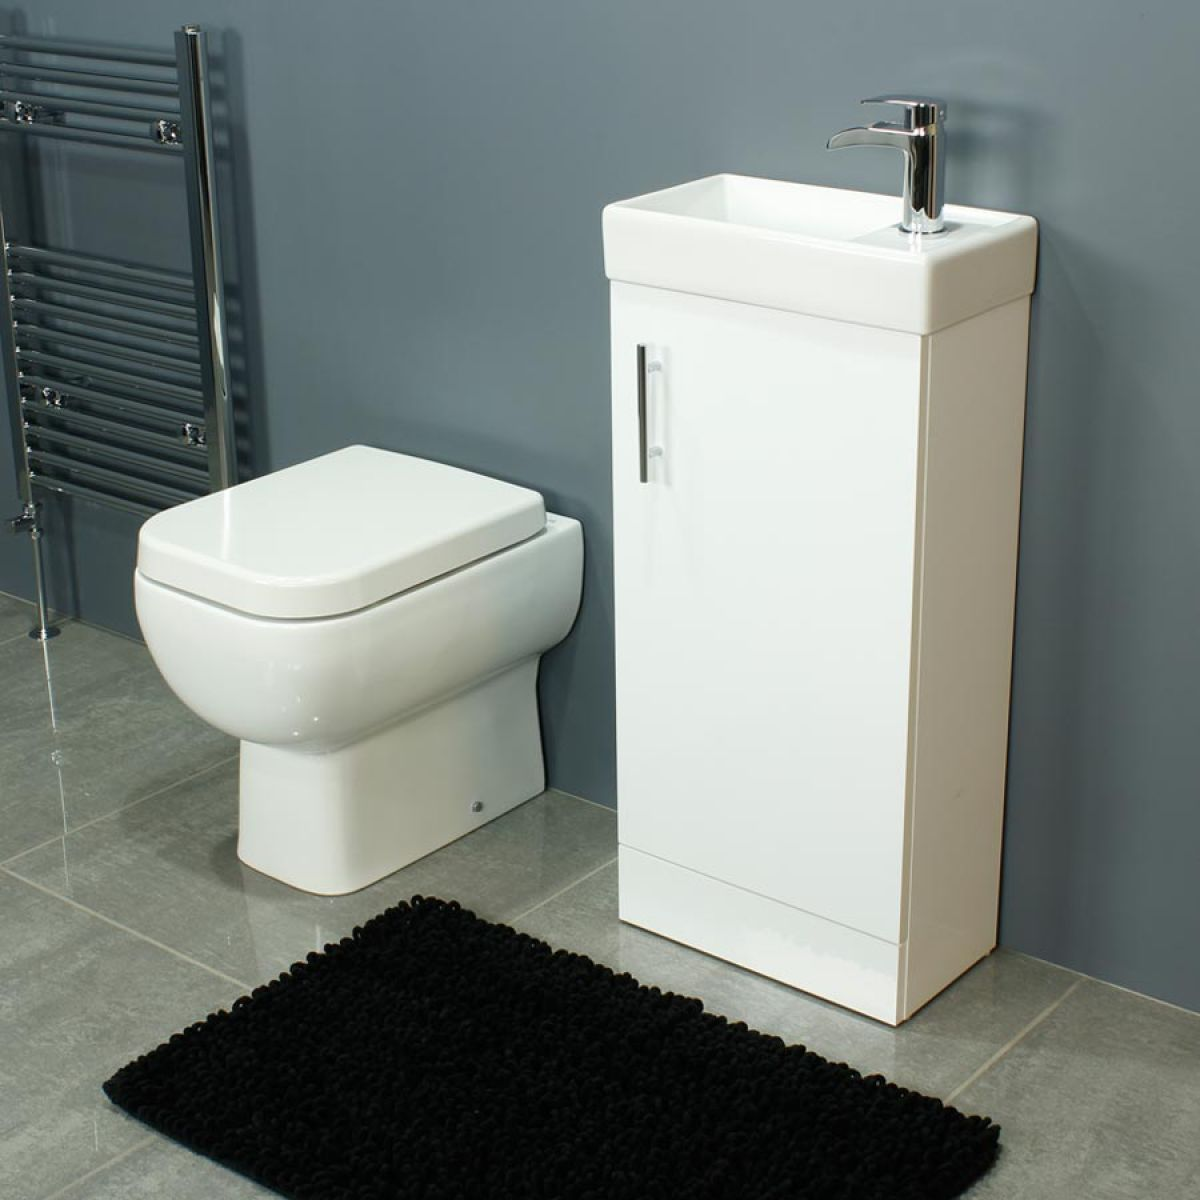 RAK Series 600 Back To Wall Toilet and 400 Series Gloss White Vanity Unit